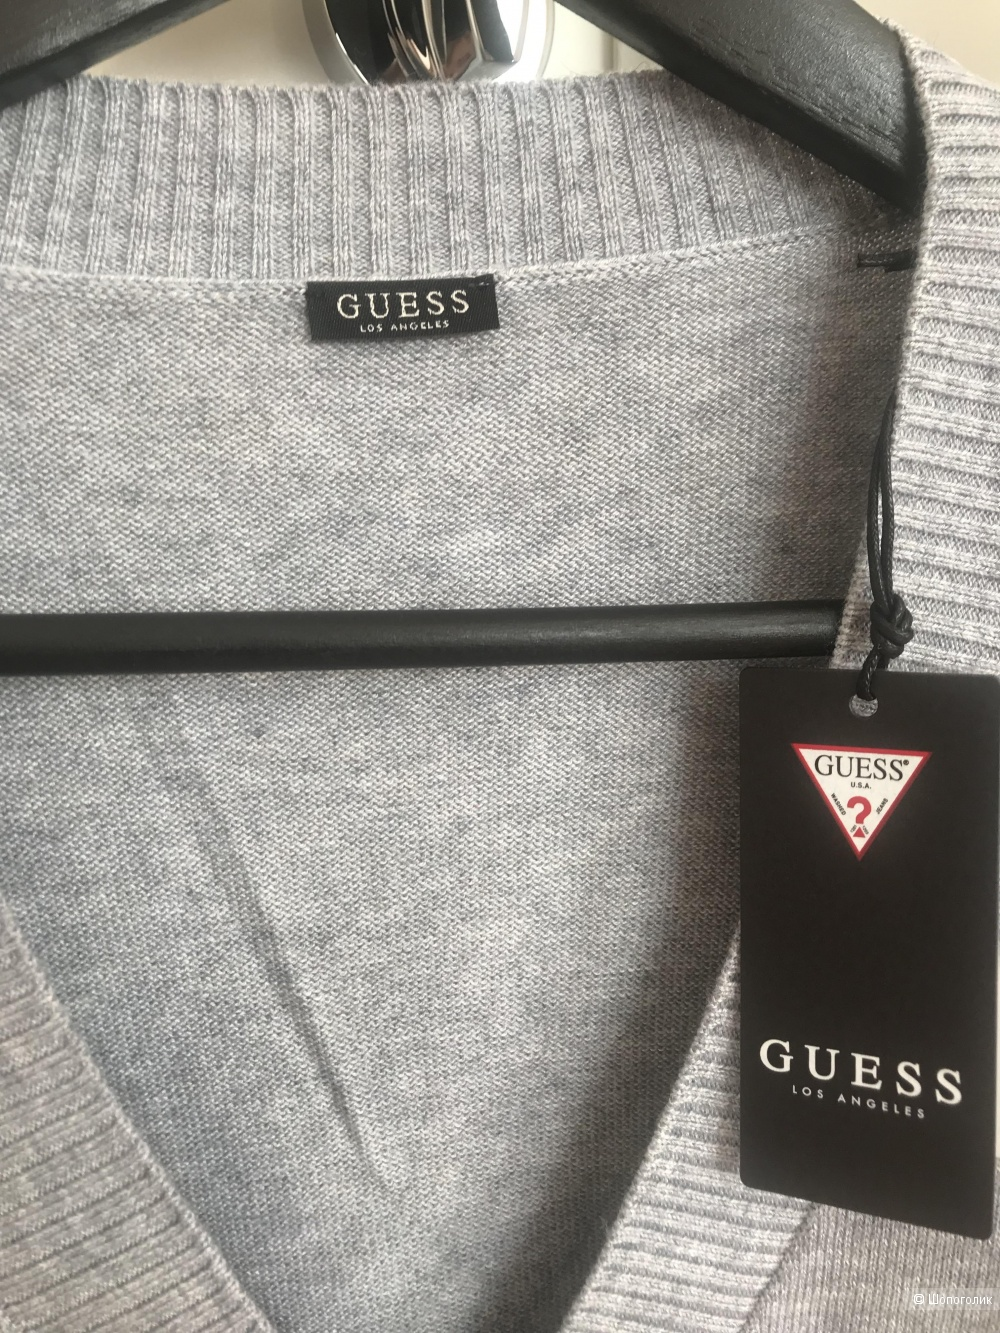 Guess Jeans размер XS/S